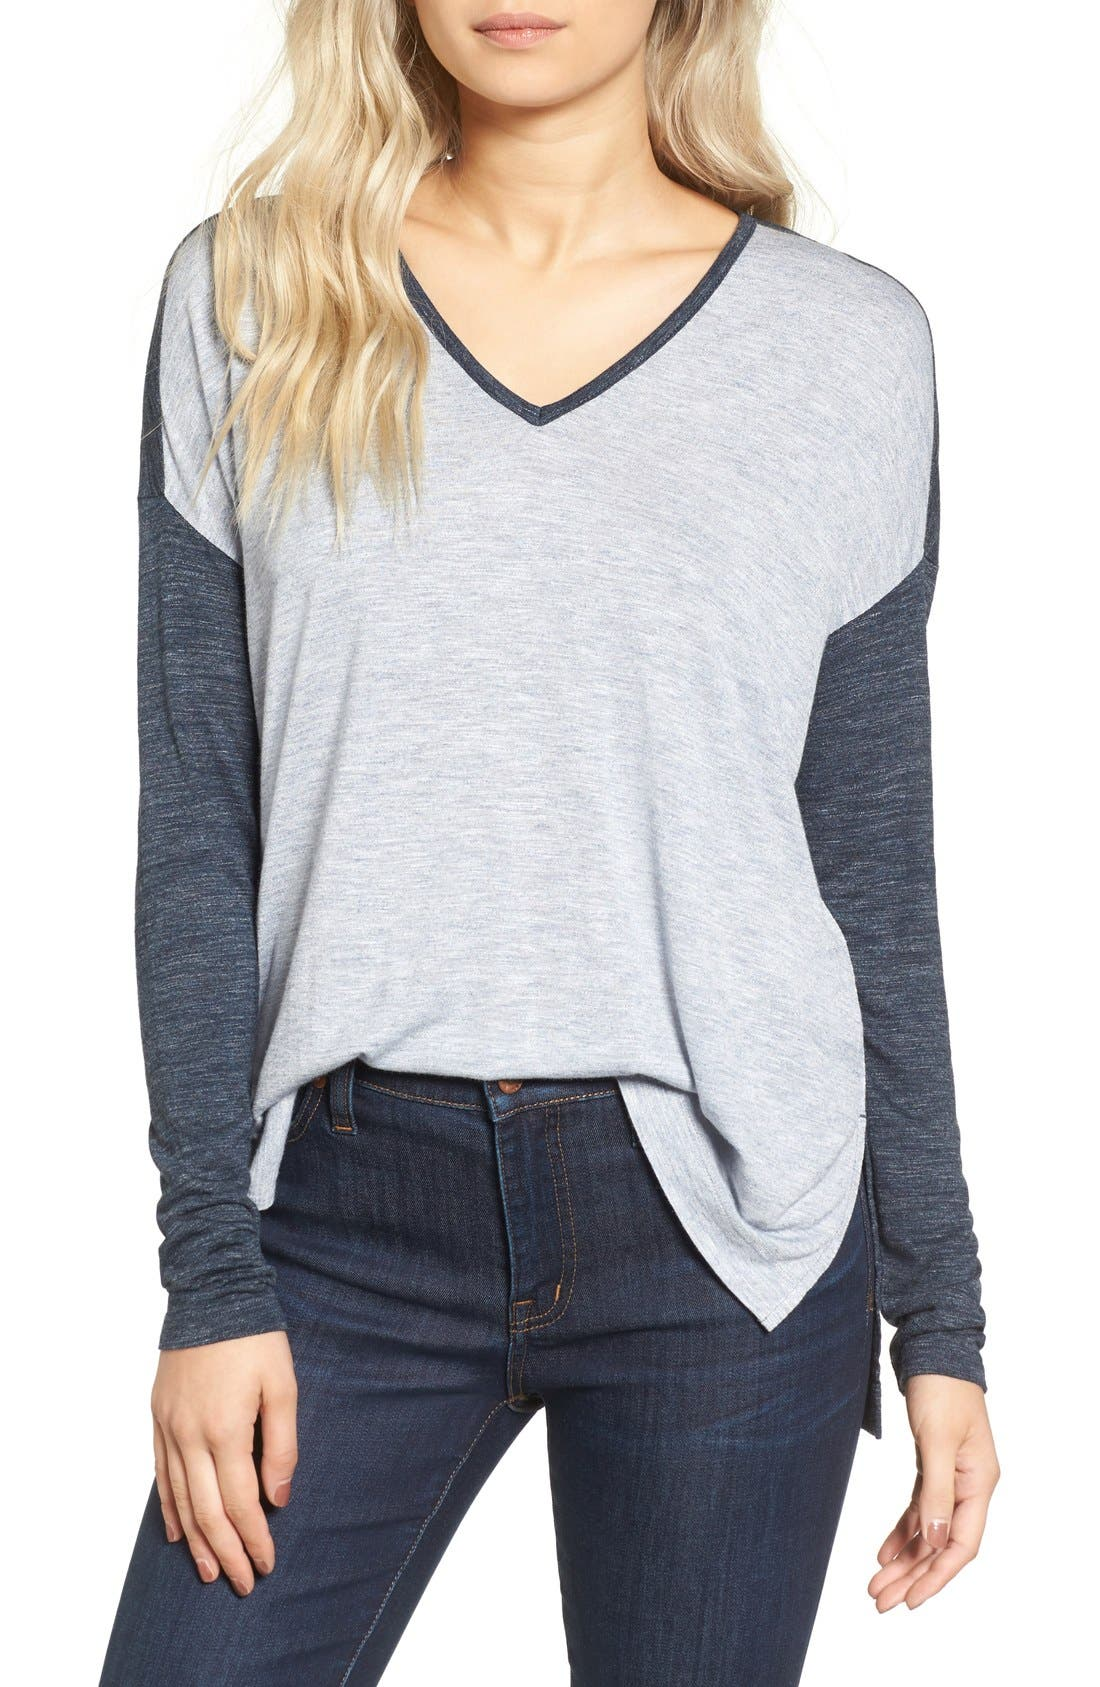 Alternate Image 1 Selected - Madewell Anthem Lightweight Colorblock Tee